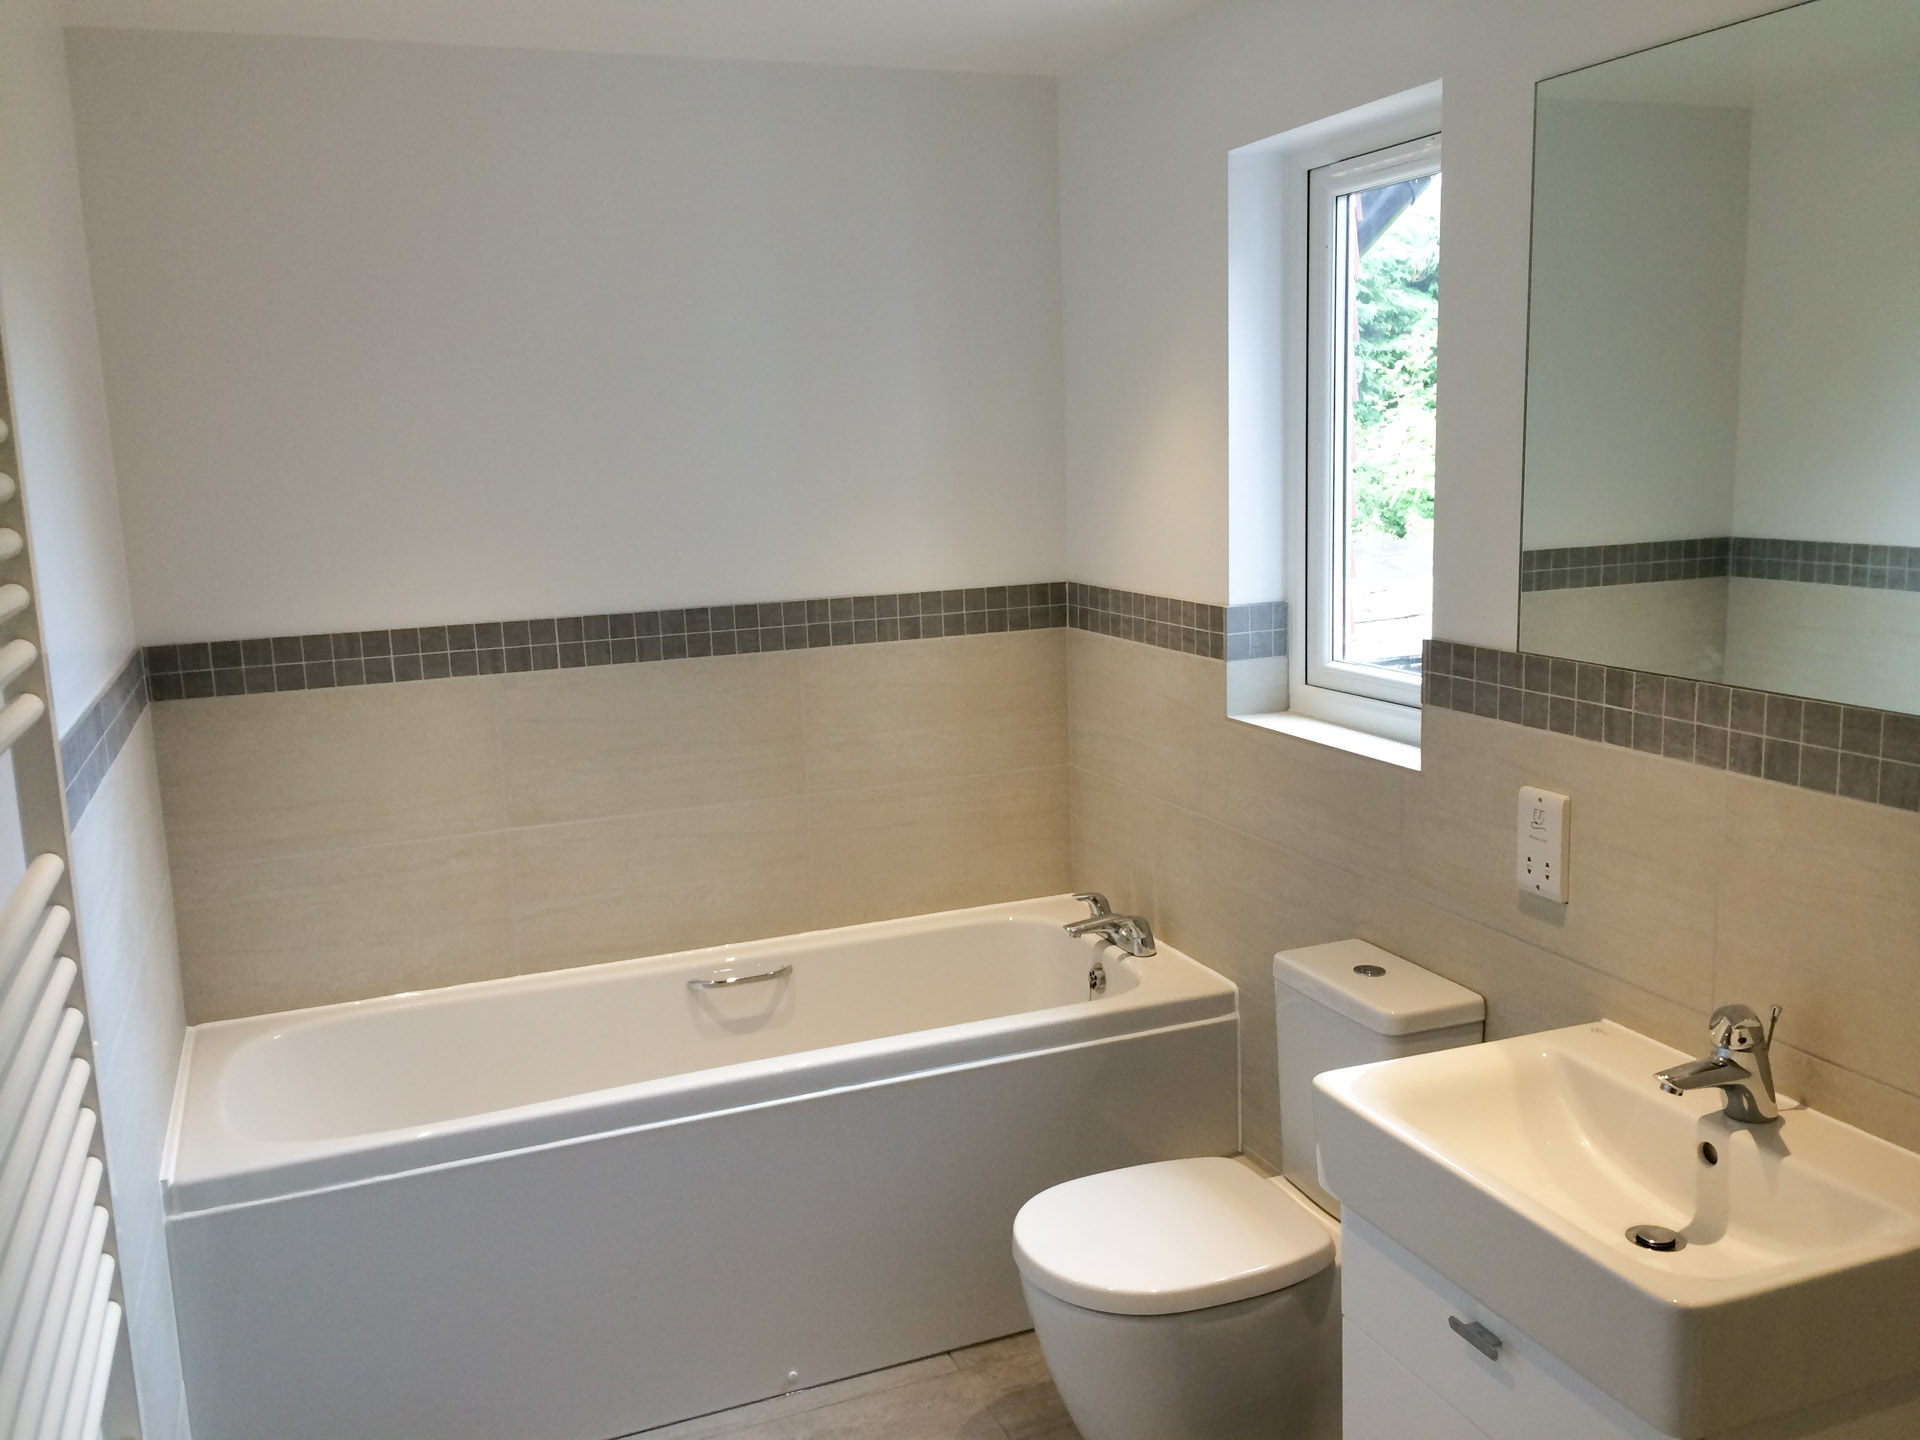 Bathroom house improvement West Kent - Joseph PCL